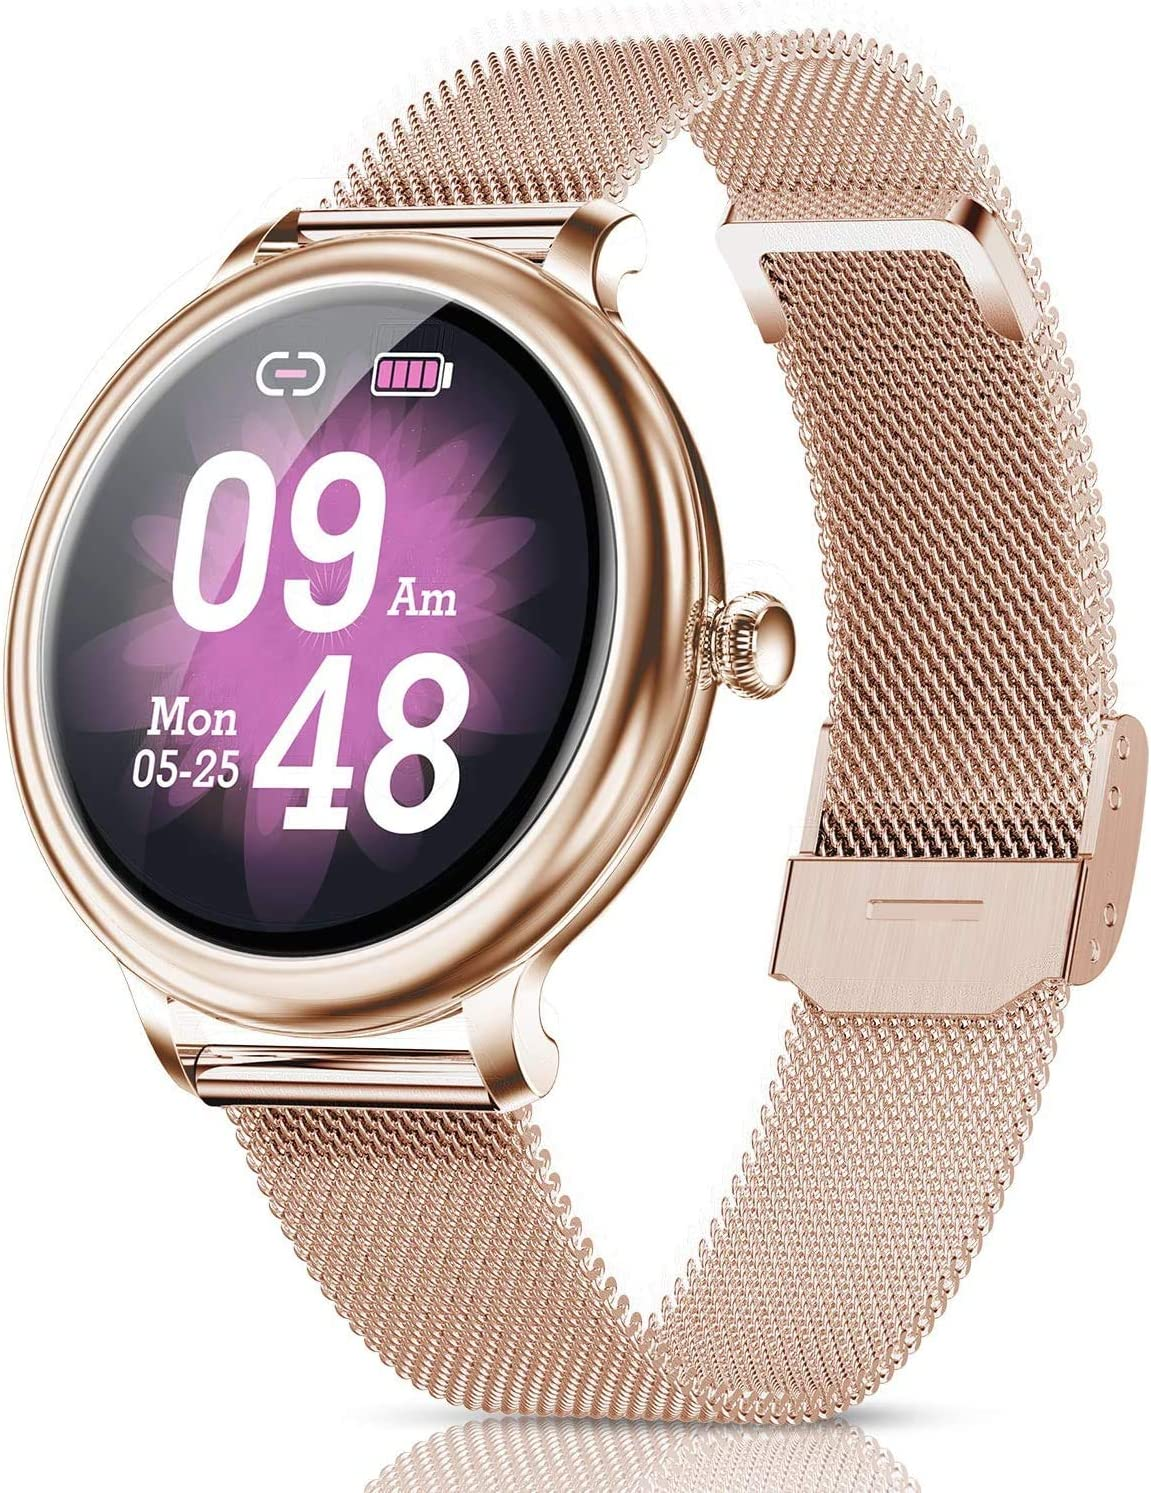 Catshin Smart Watch for Android Phones,Fitness Tracker,Fitness Watch IP68 Waterproof Bluetooth,Heart Rate Monitor Watch Compatible Samsung iPhone,Smart Watch for Women for Android